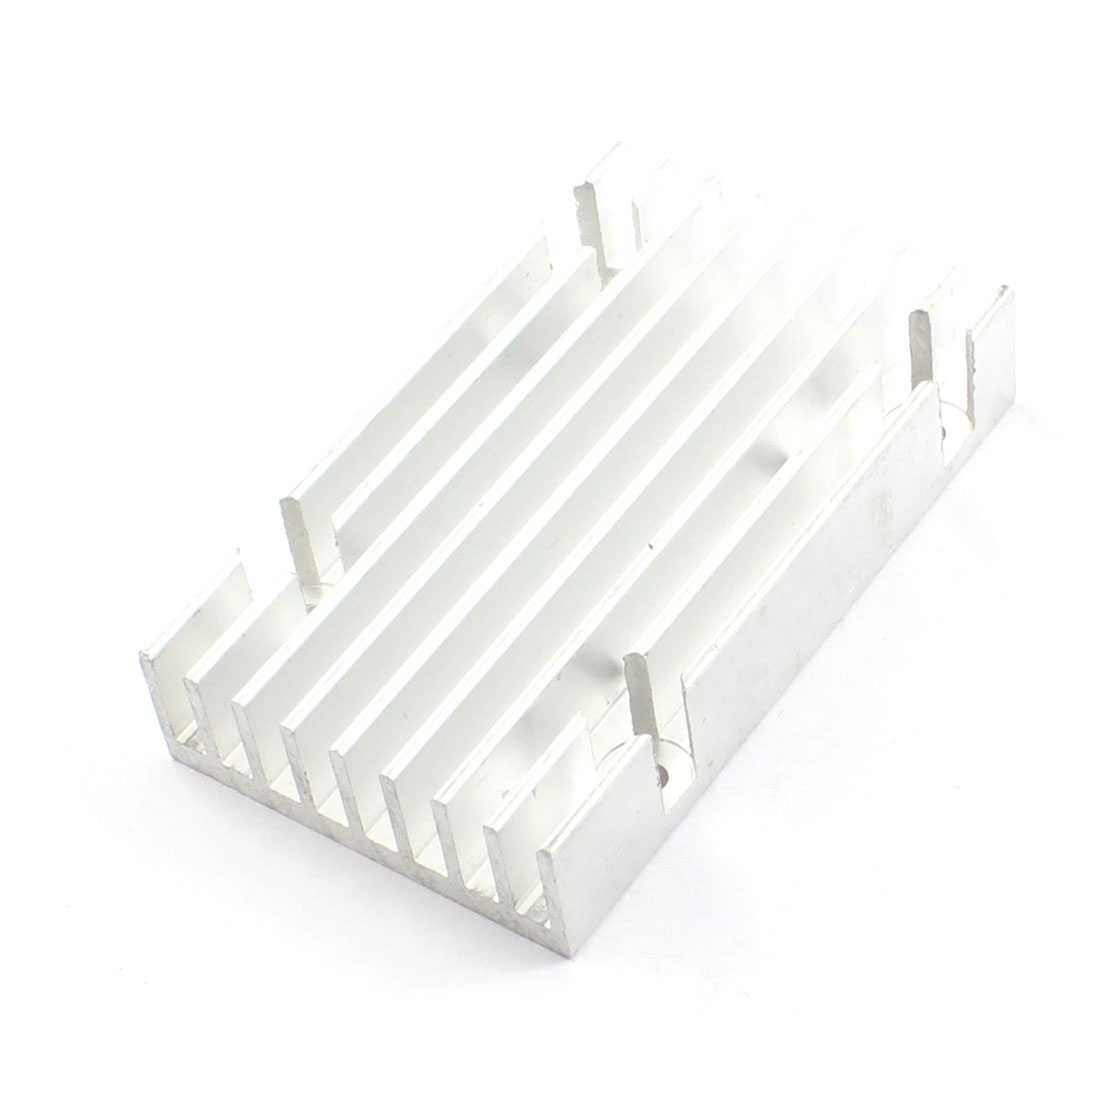 84mm x 50mm x 17mm Rectangle Aluminium Profile Heatsink Heat Dissipate Cooling Fin Silver Tone